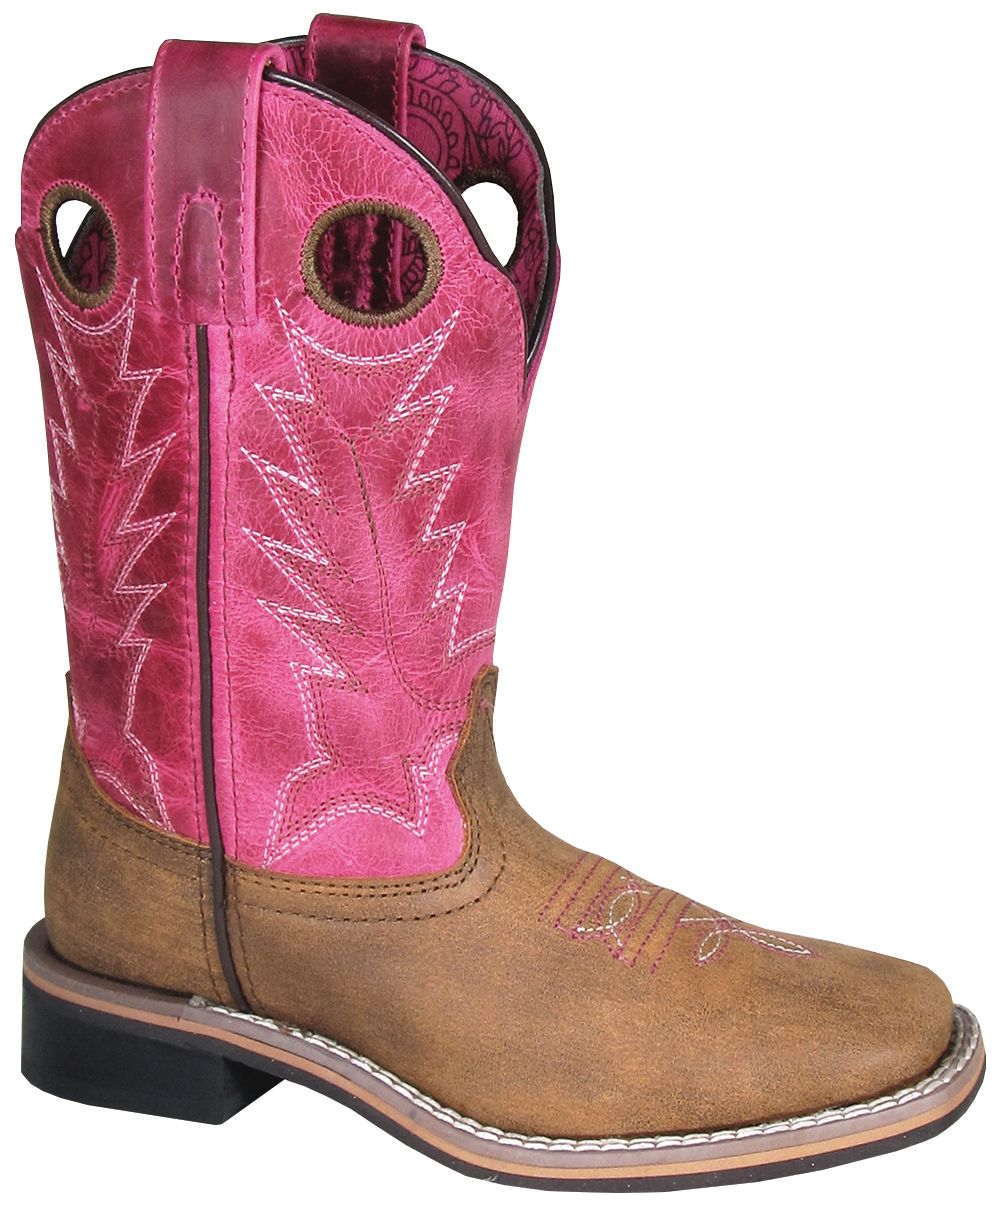 'Smoky Mountain' Children's Tracie Western Square Toe - Brown Distress / Pink Distress